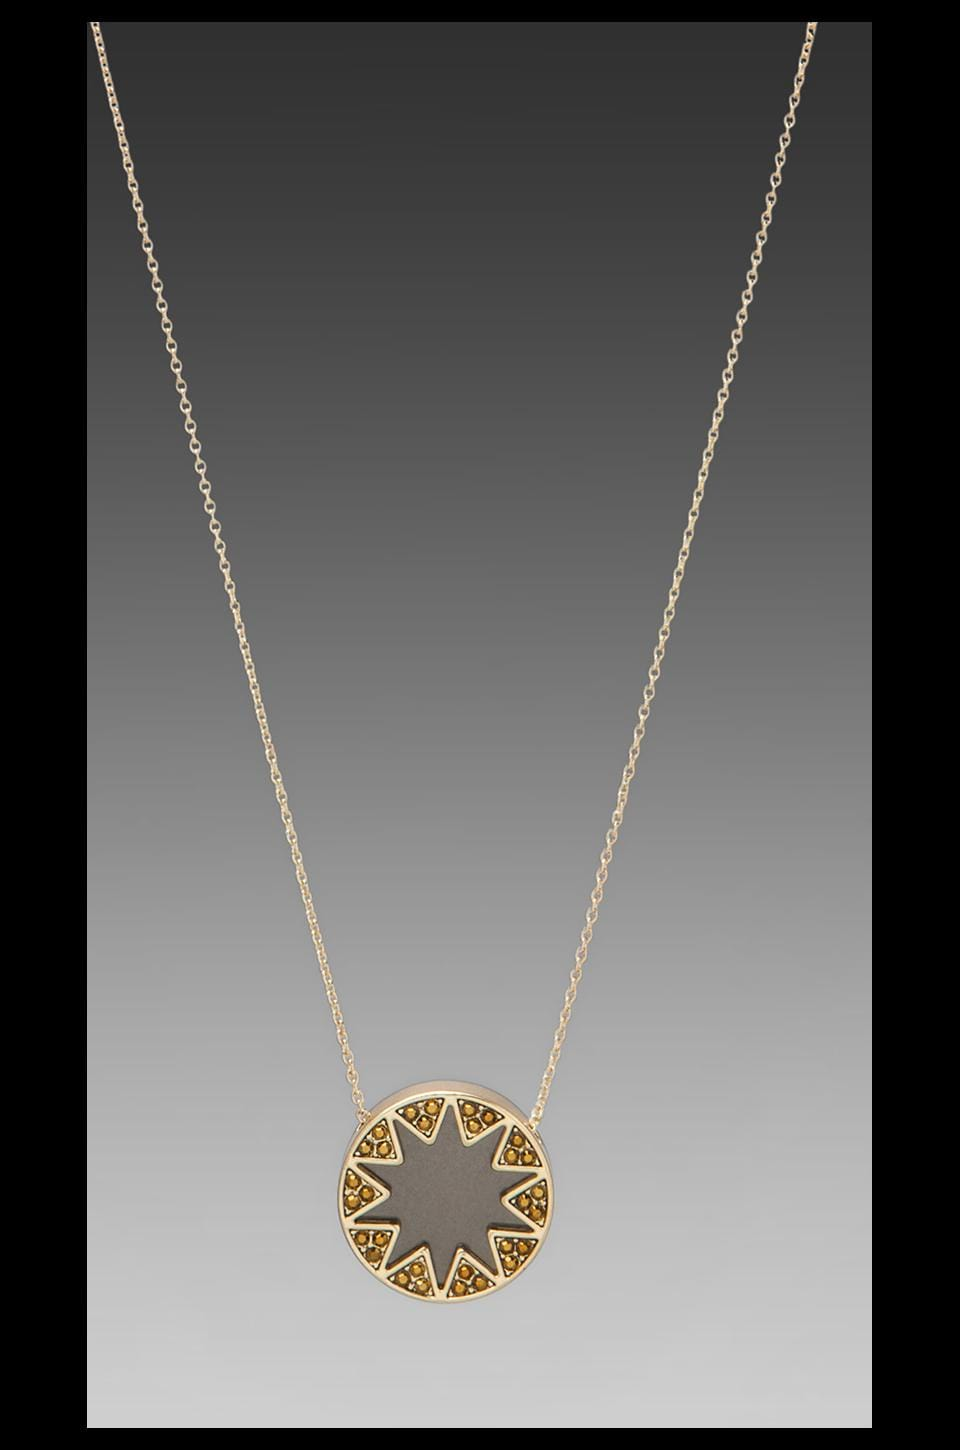 House of Harlow 1960 House of Harlow Earth Metal Sunburst Station Necklace in Gold/Black